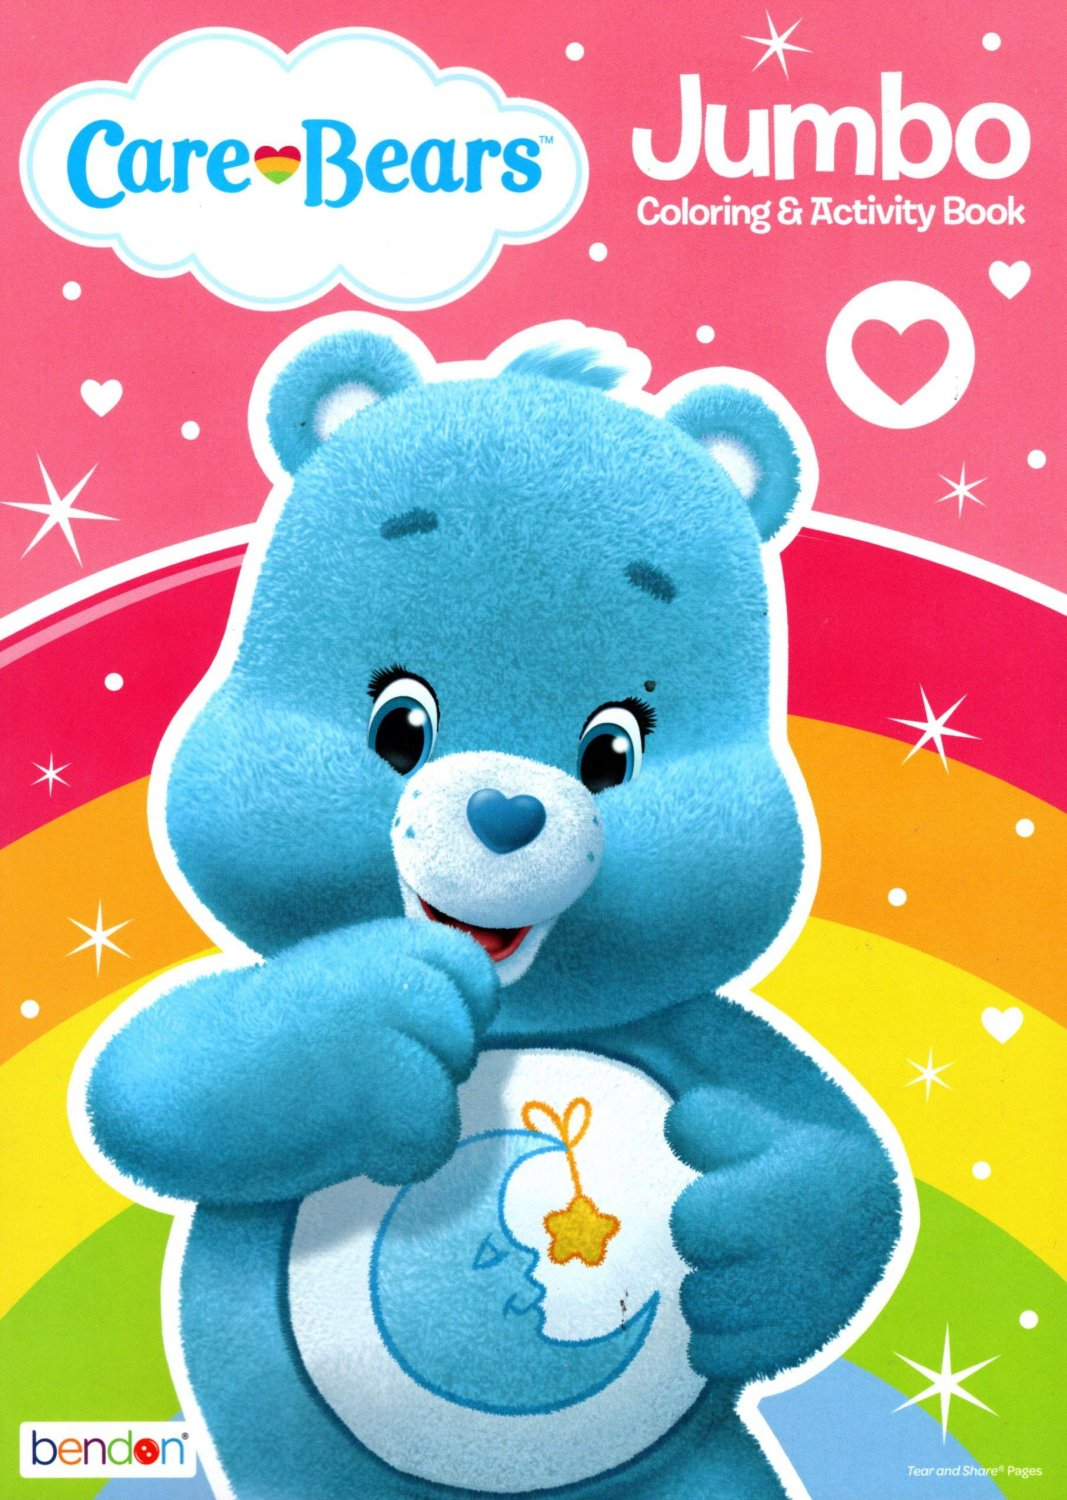 Care Bears - Jumbo Coloring & Activity Book v3